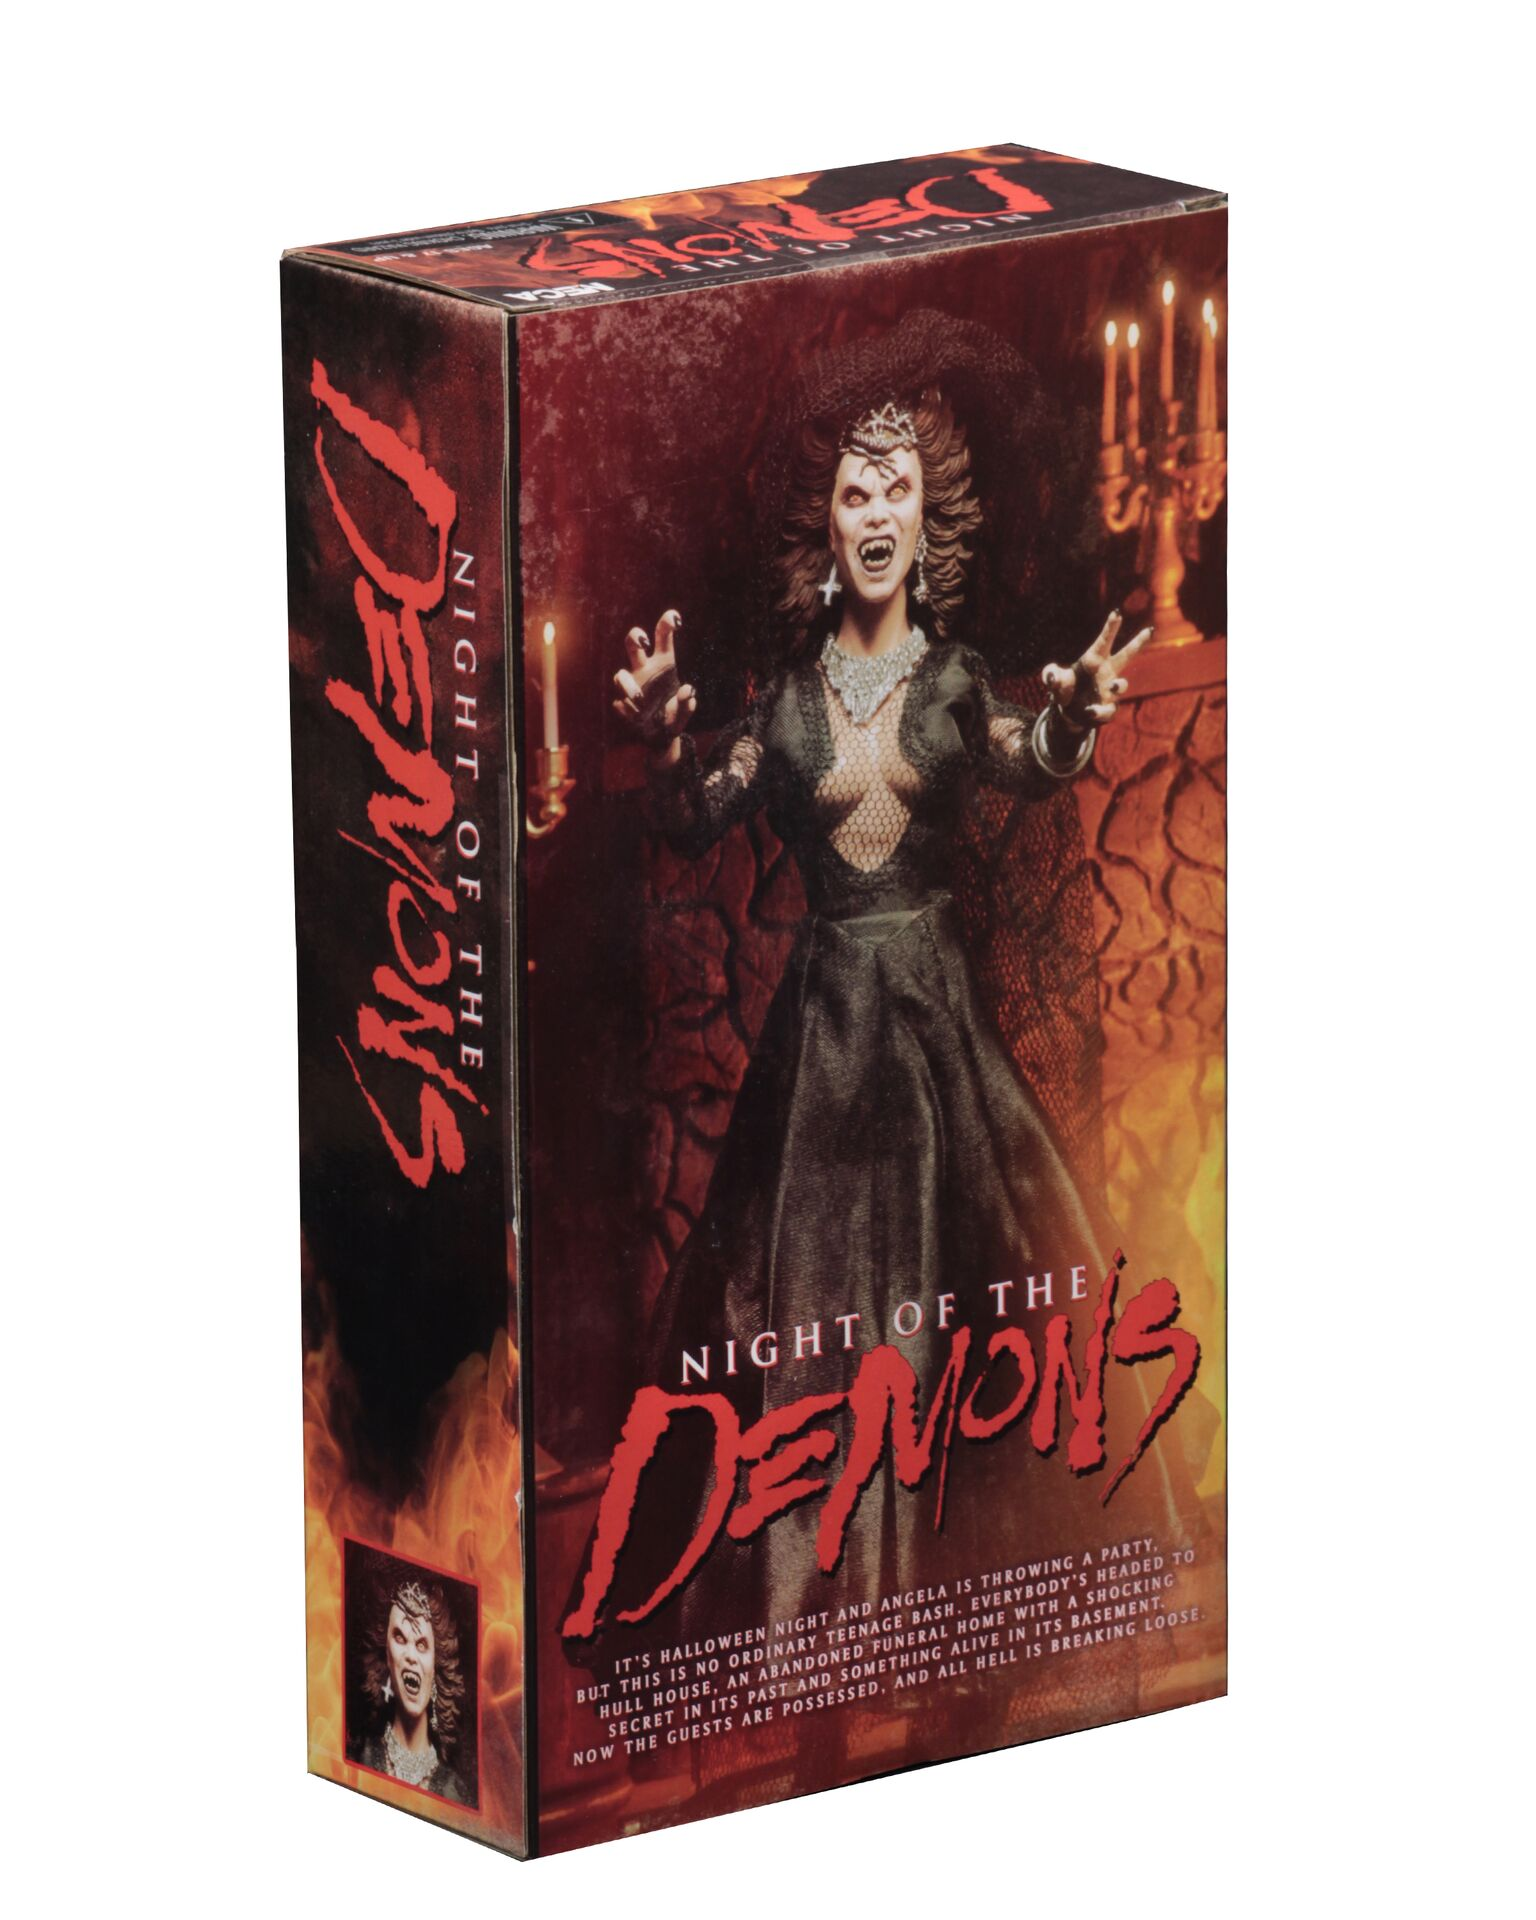 night of the demons [deluxe limited edition steelbook with exclusive